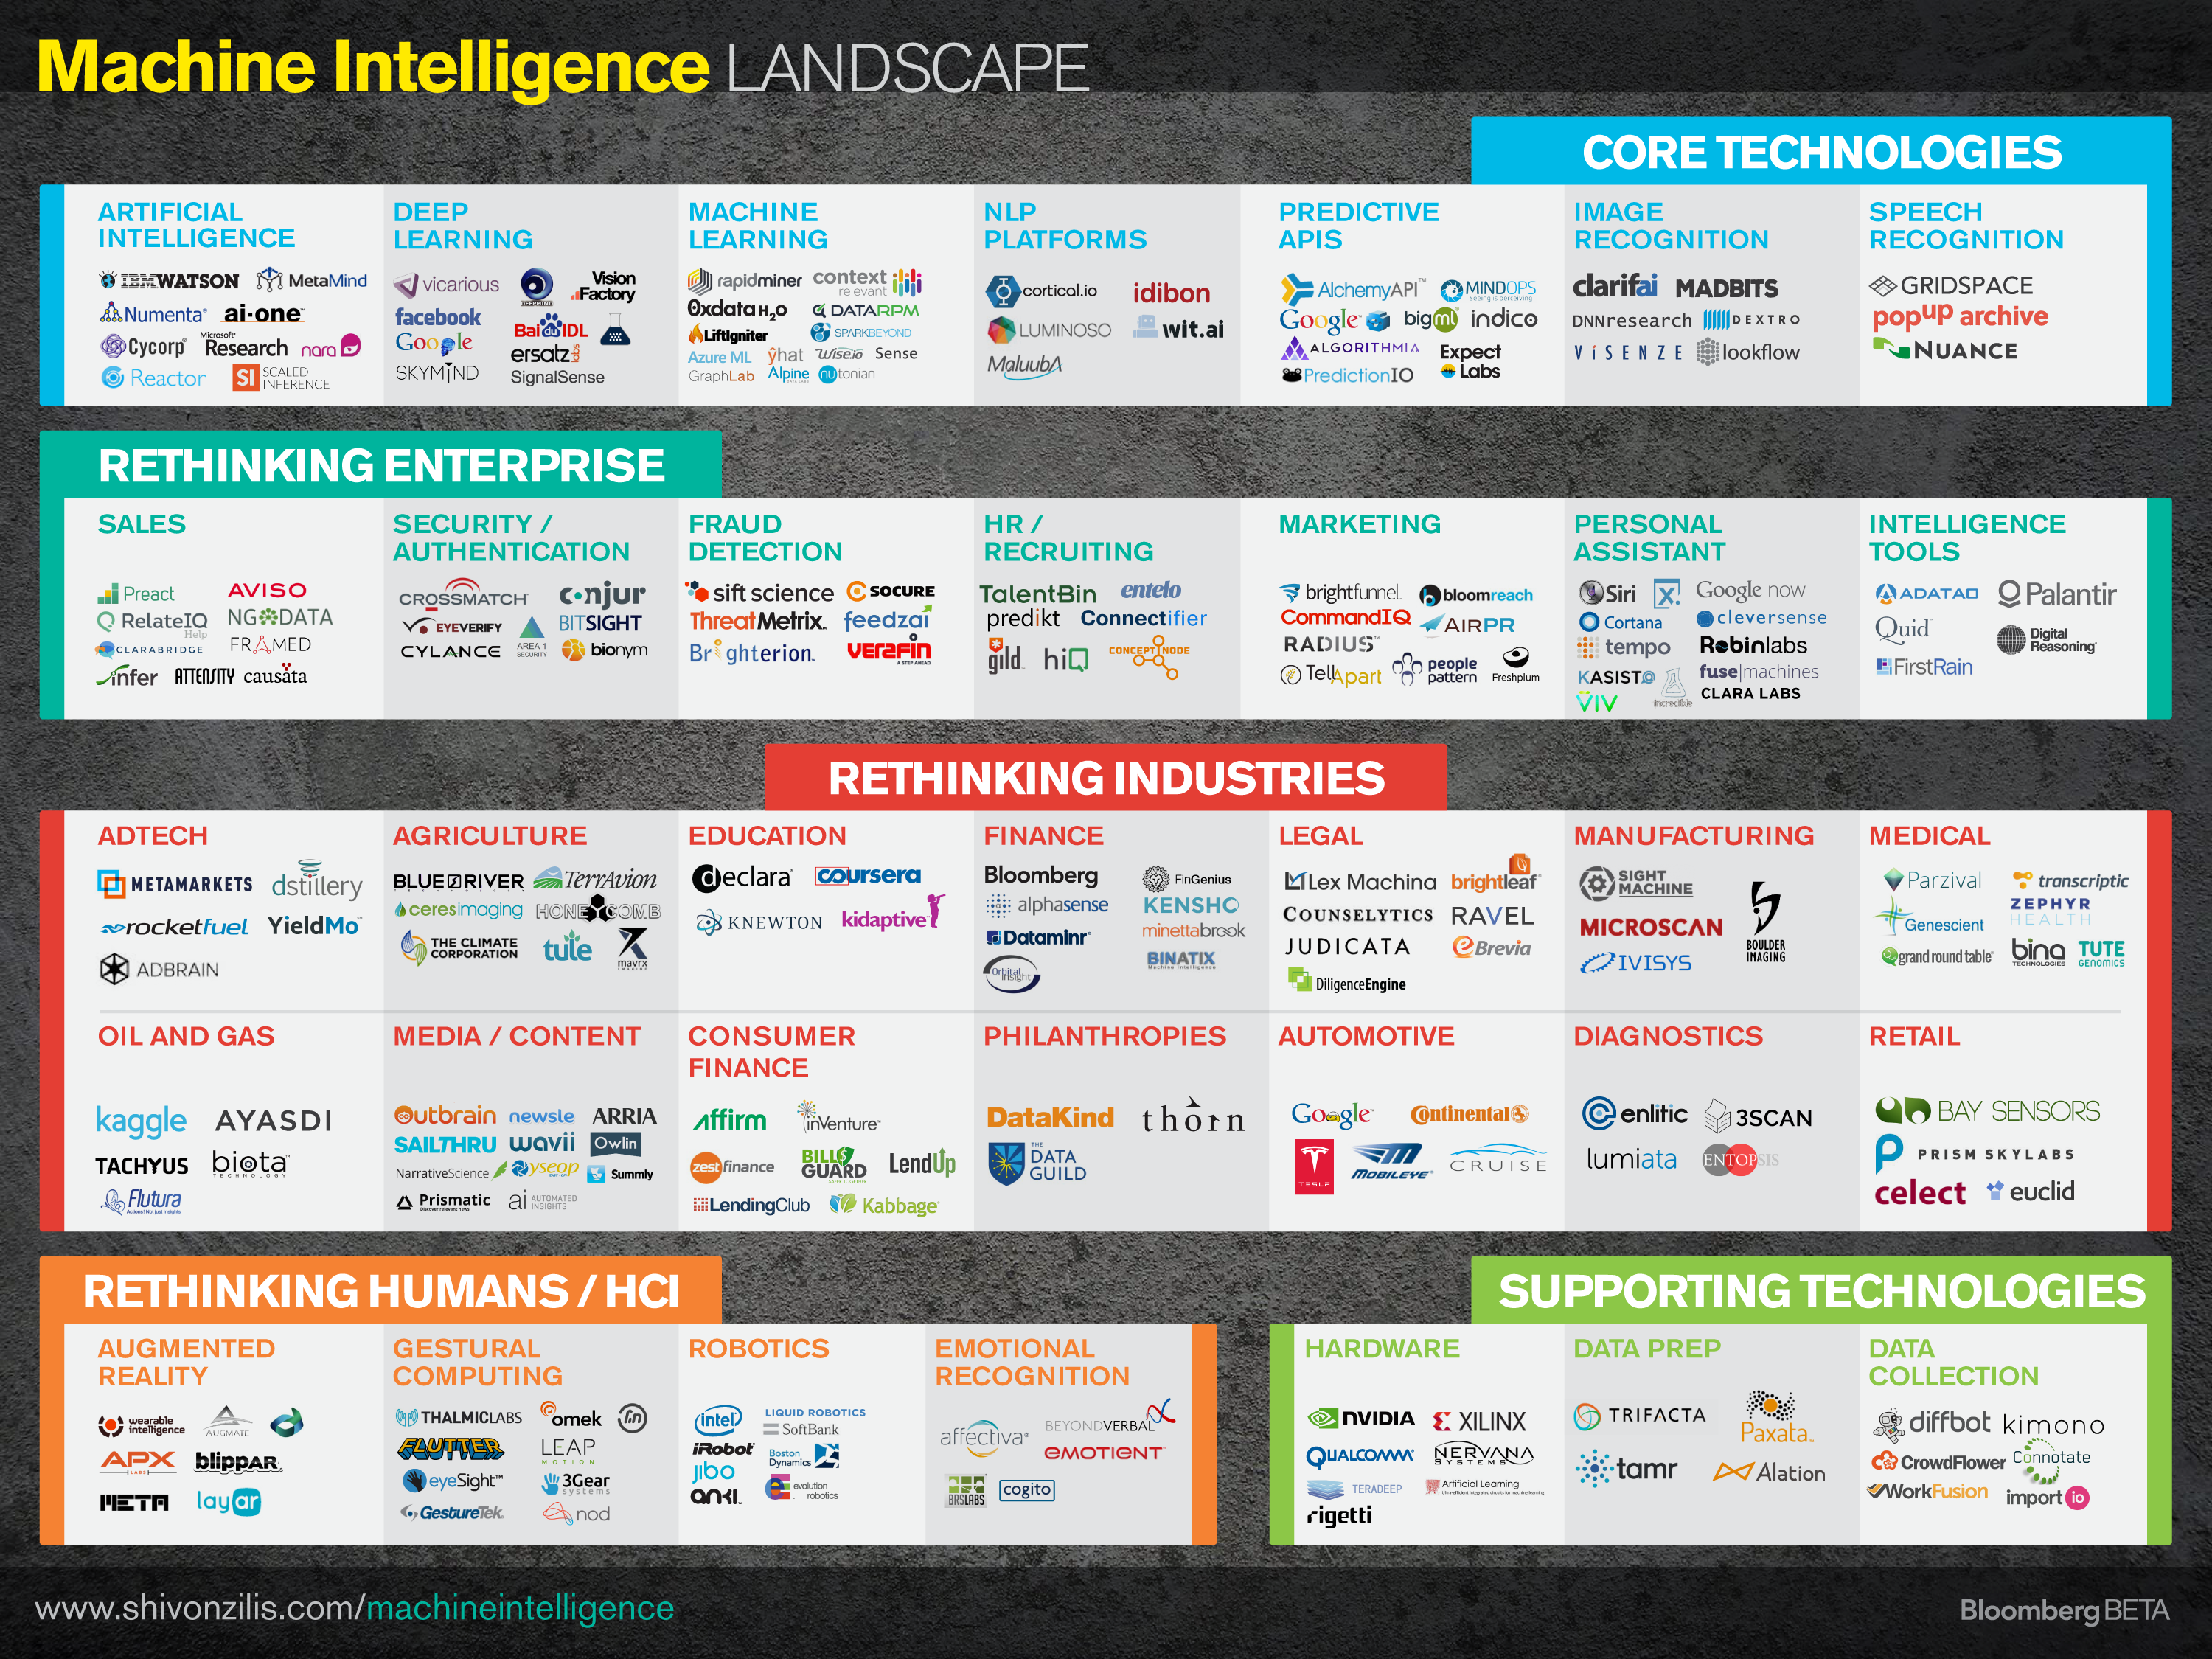 Machine_Intelligence_Landscape_12-10-2014